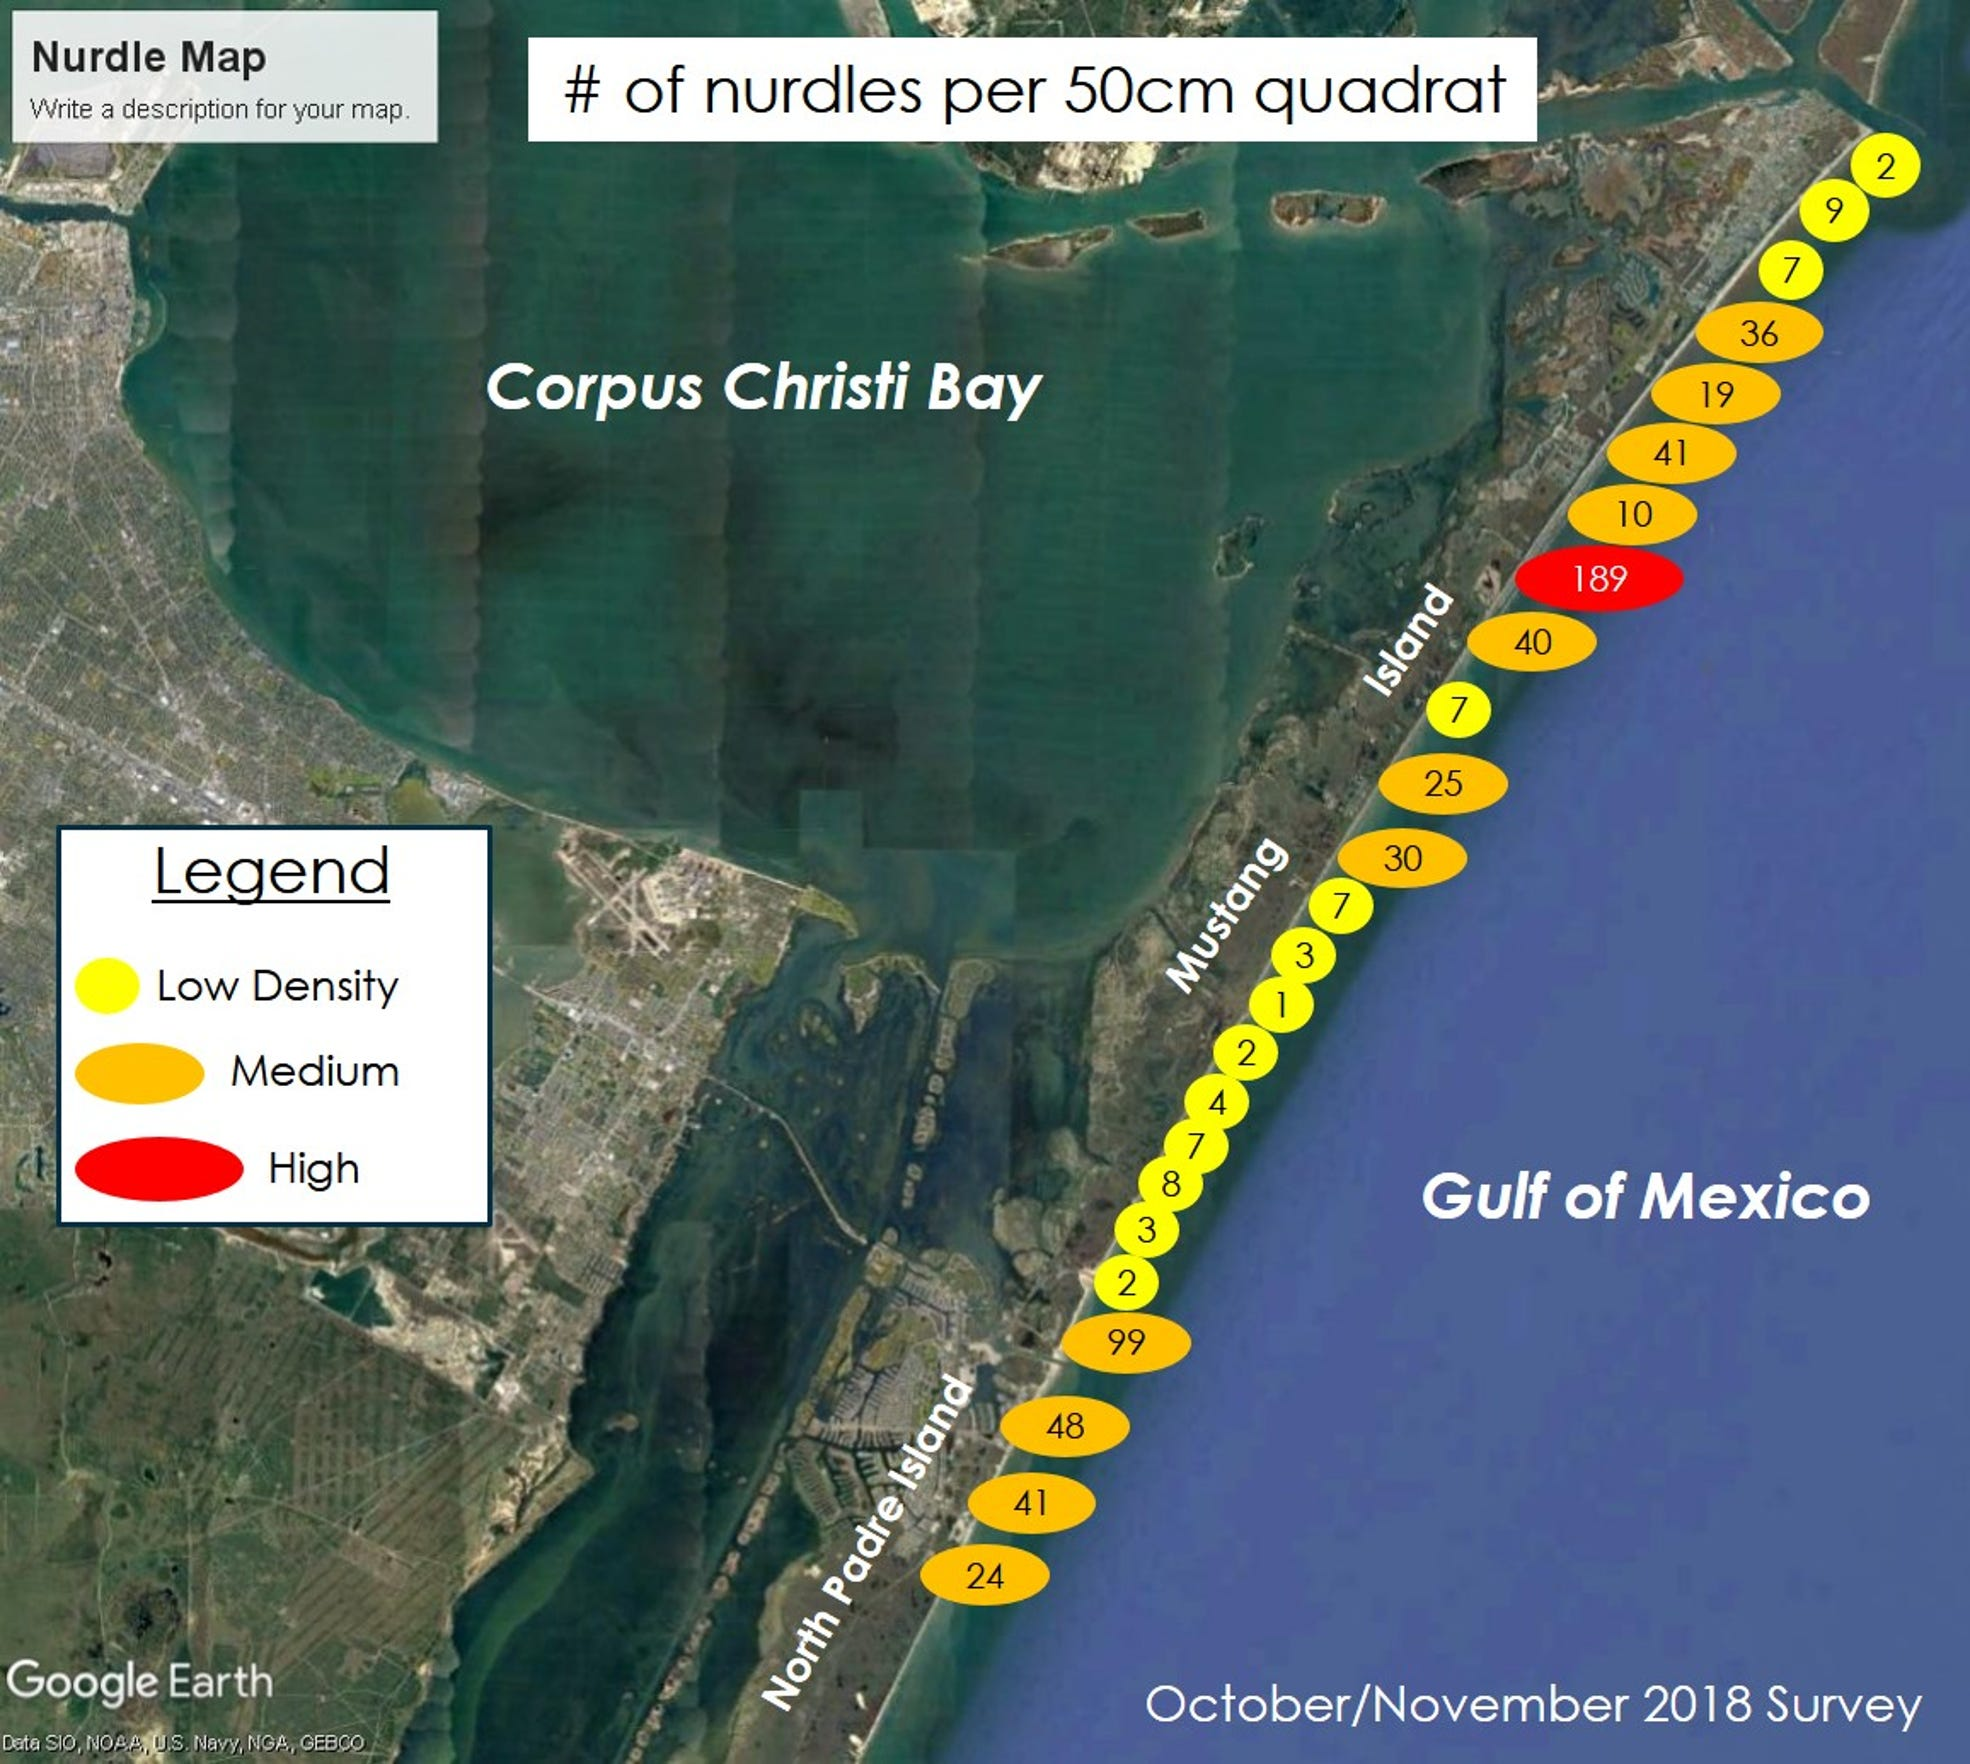 This map shows the nurdle distribution and density of the plastic pellets found along the entire length of Mustang Island.